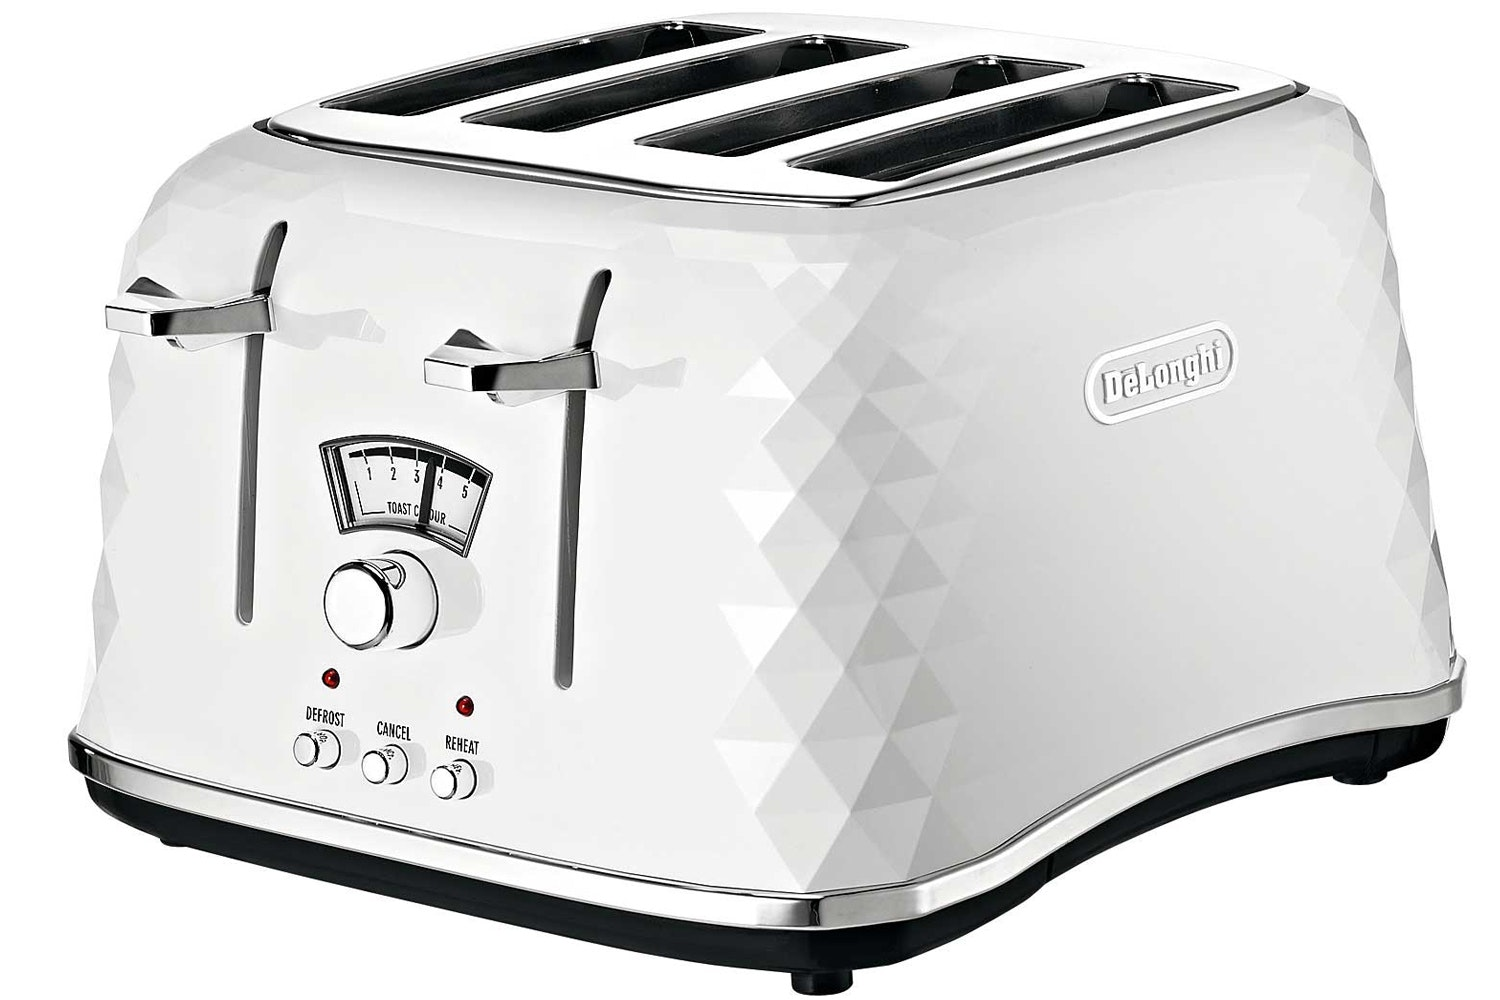 DeLonghi Brilliante 4 Slice Toaster | CTJ4003W | White